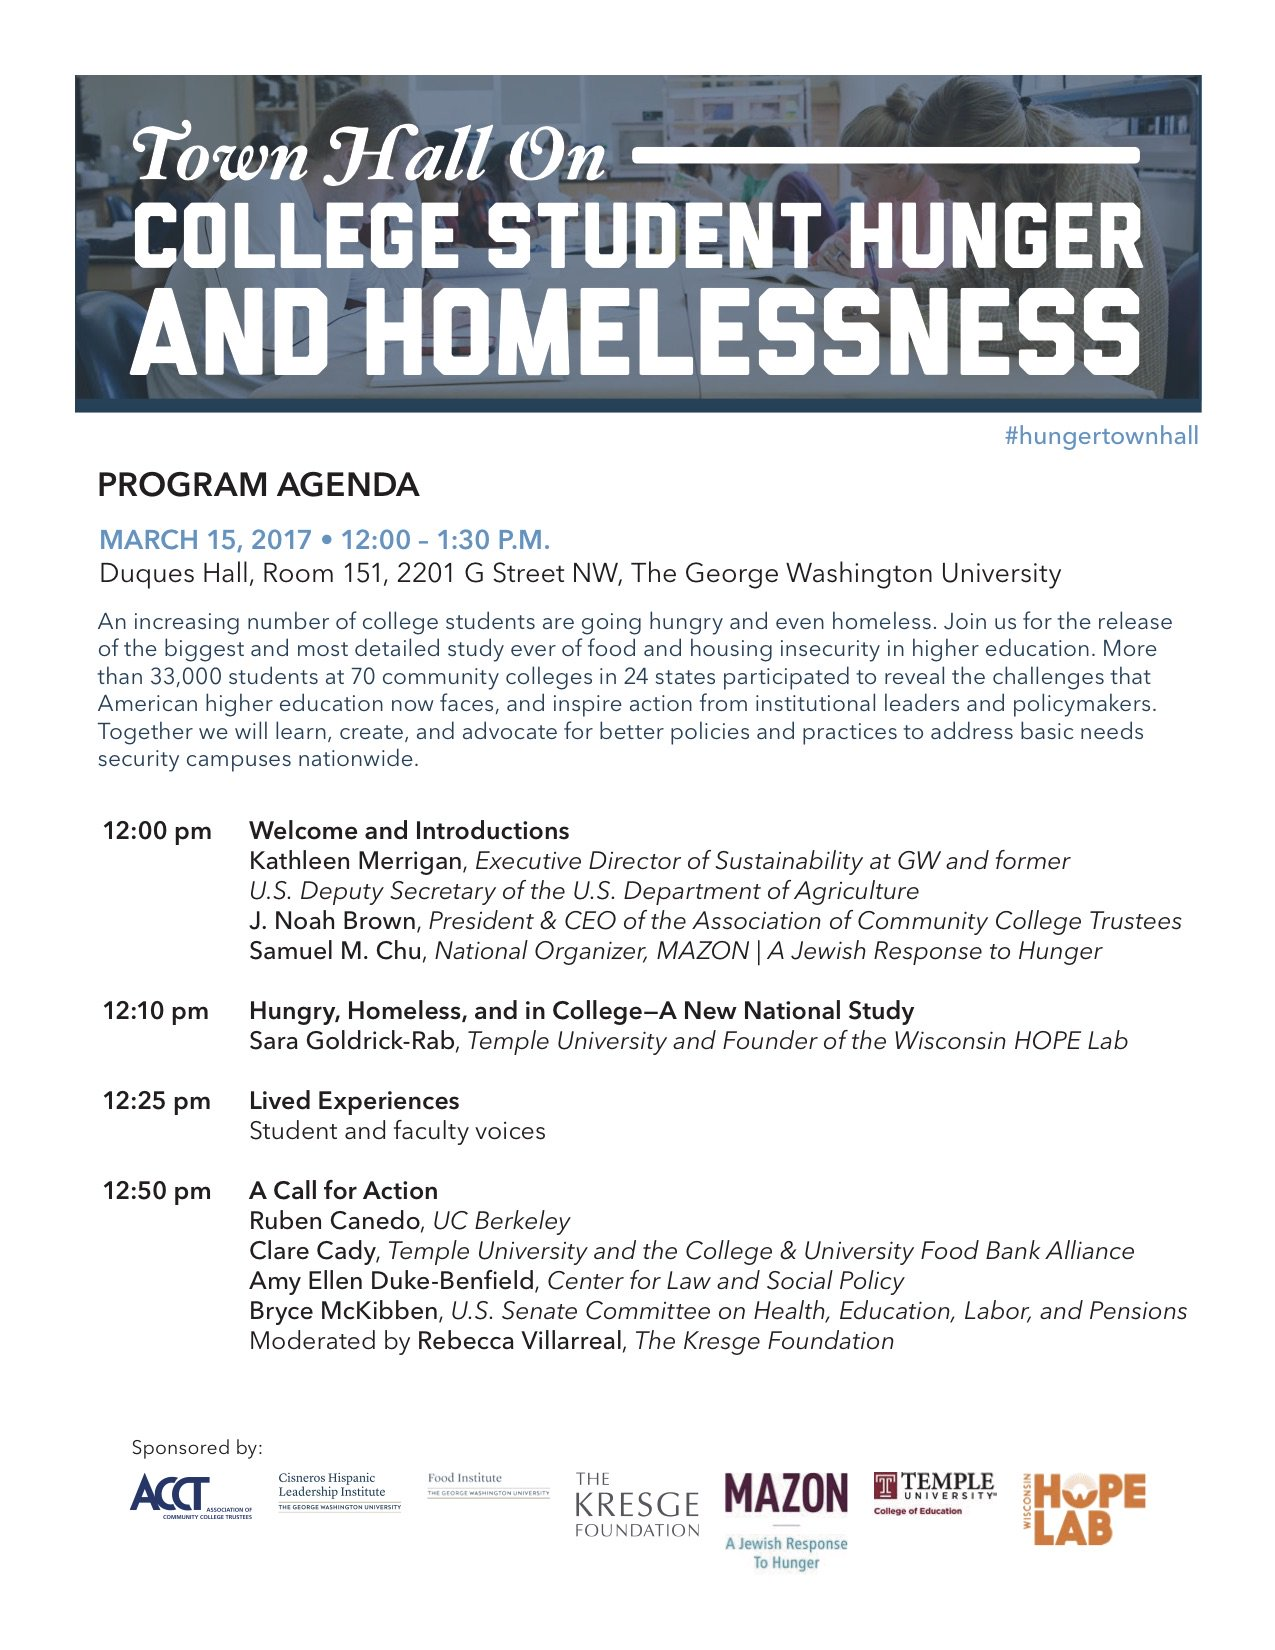 #HungerTownHall will be live-streamed on Wednesday from 12-130 pm EST at https://t.co/AybWYFbQ9R   #EMCHAT #SACHAT #FACHAT #SXSWEdu https://t.co/uIKjgKNi2q